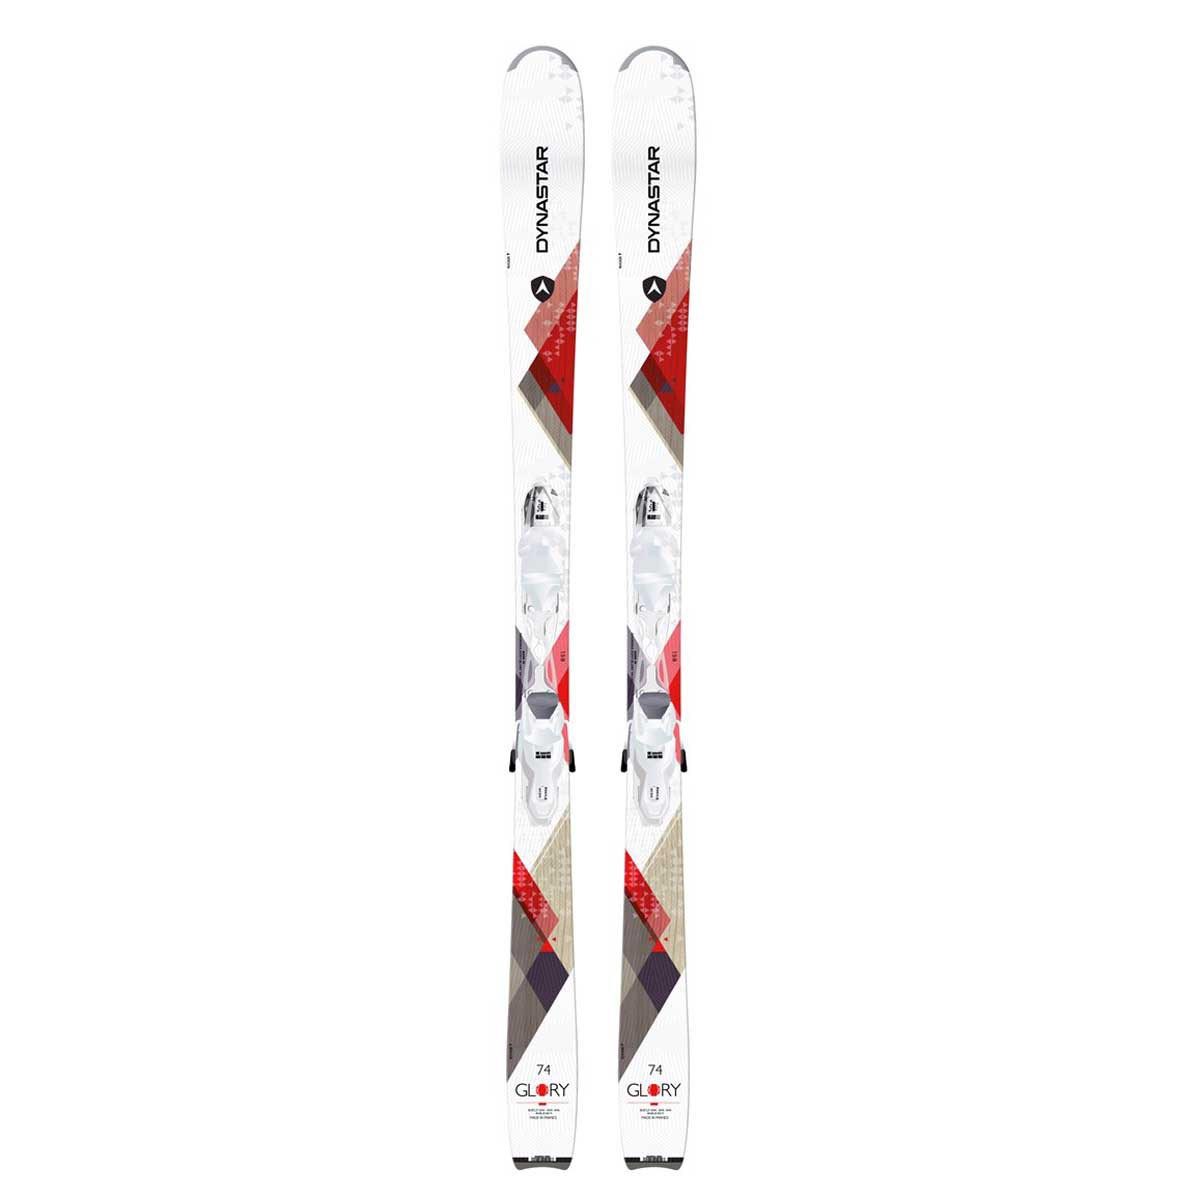 38354-dynastar-glory-74-skis-wlook-xpress-10-bindings-149cm-1-xl